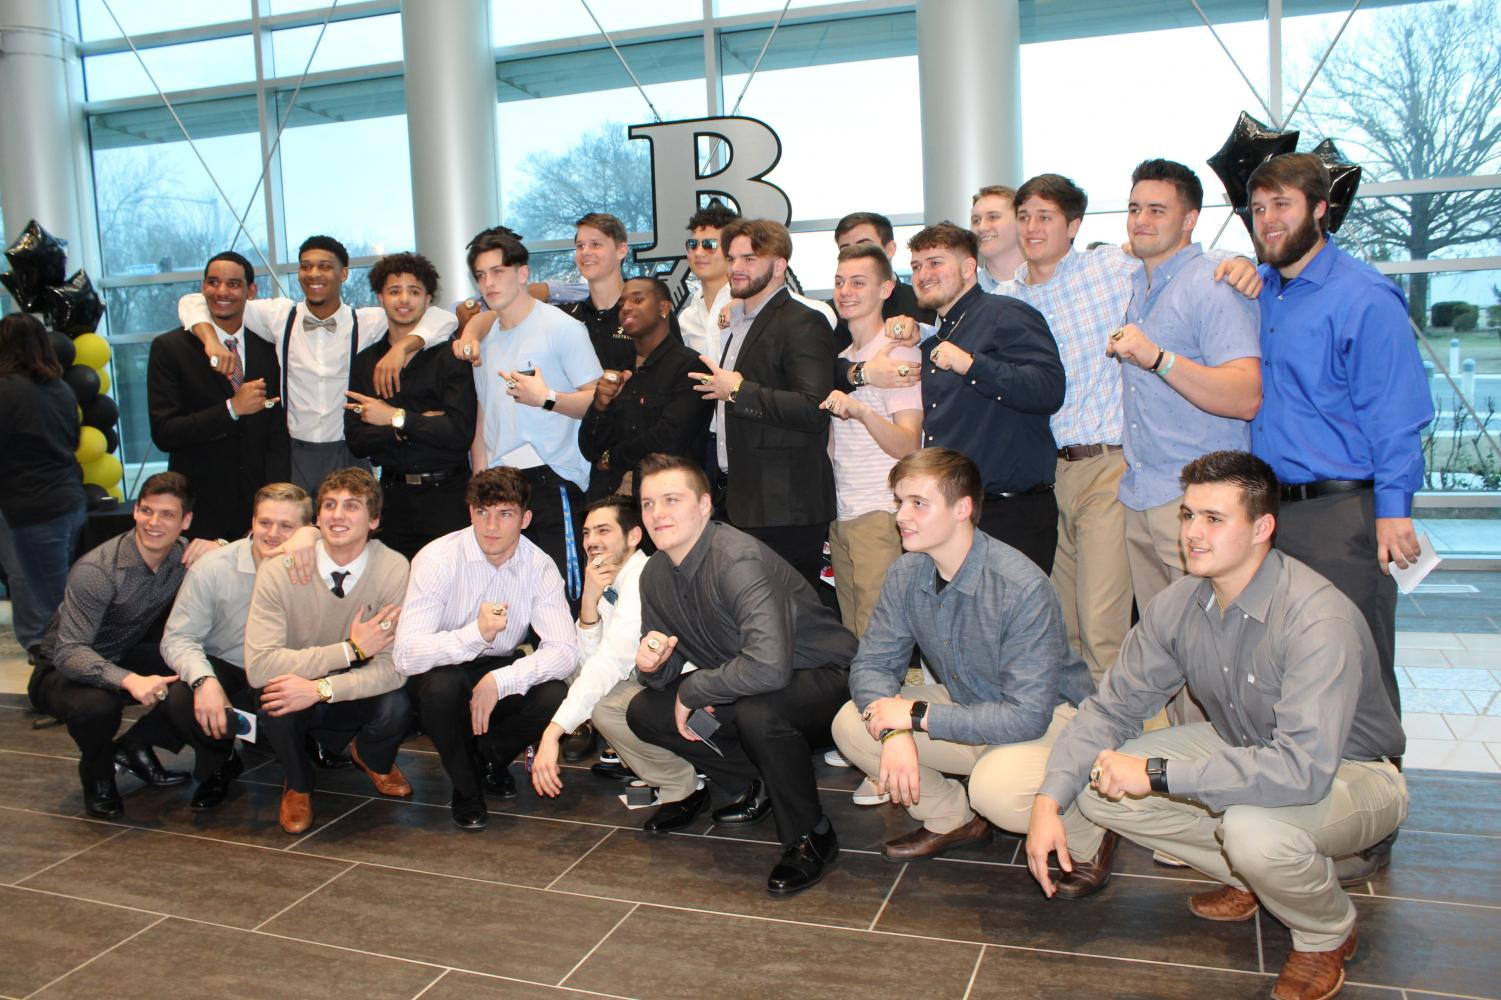 Senior members of the state championship football team pose for a photo after receiving their state rings in a special ceremony.